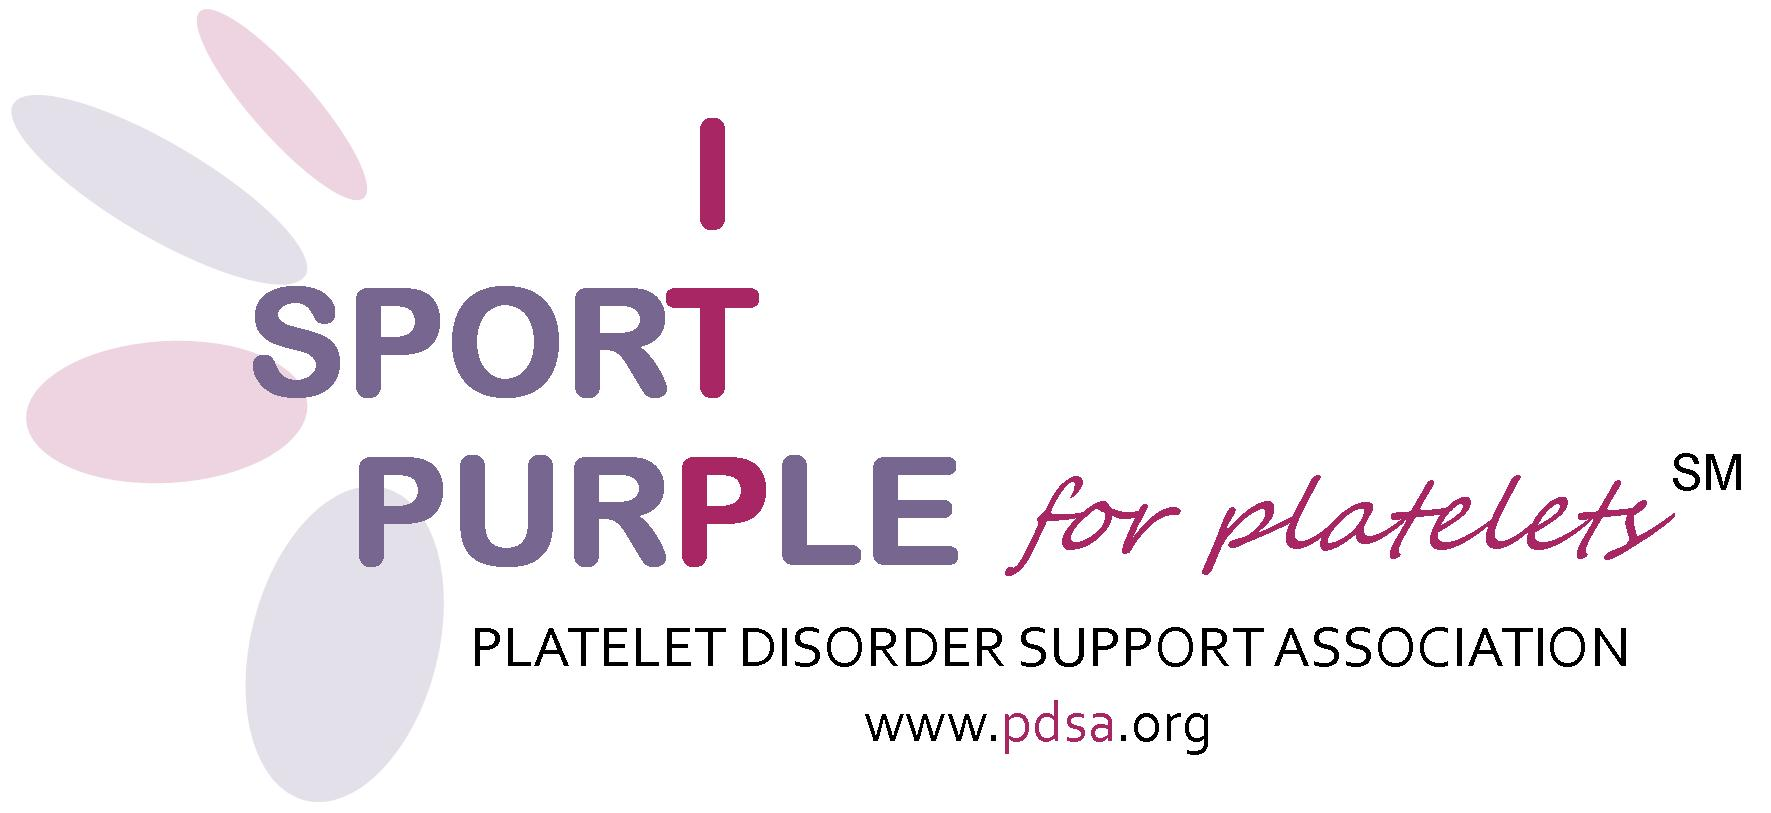 Sport Purple for Platelets Day logo